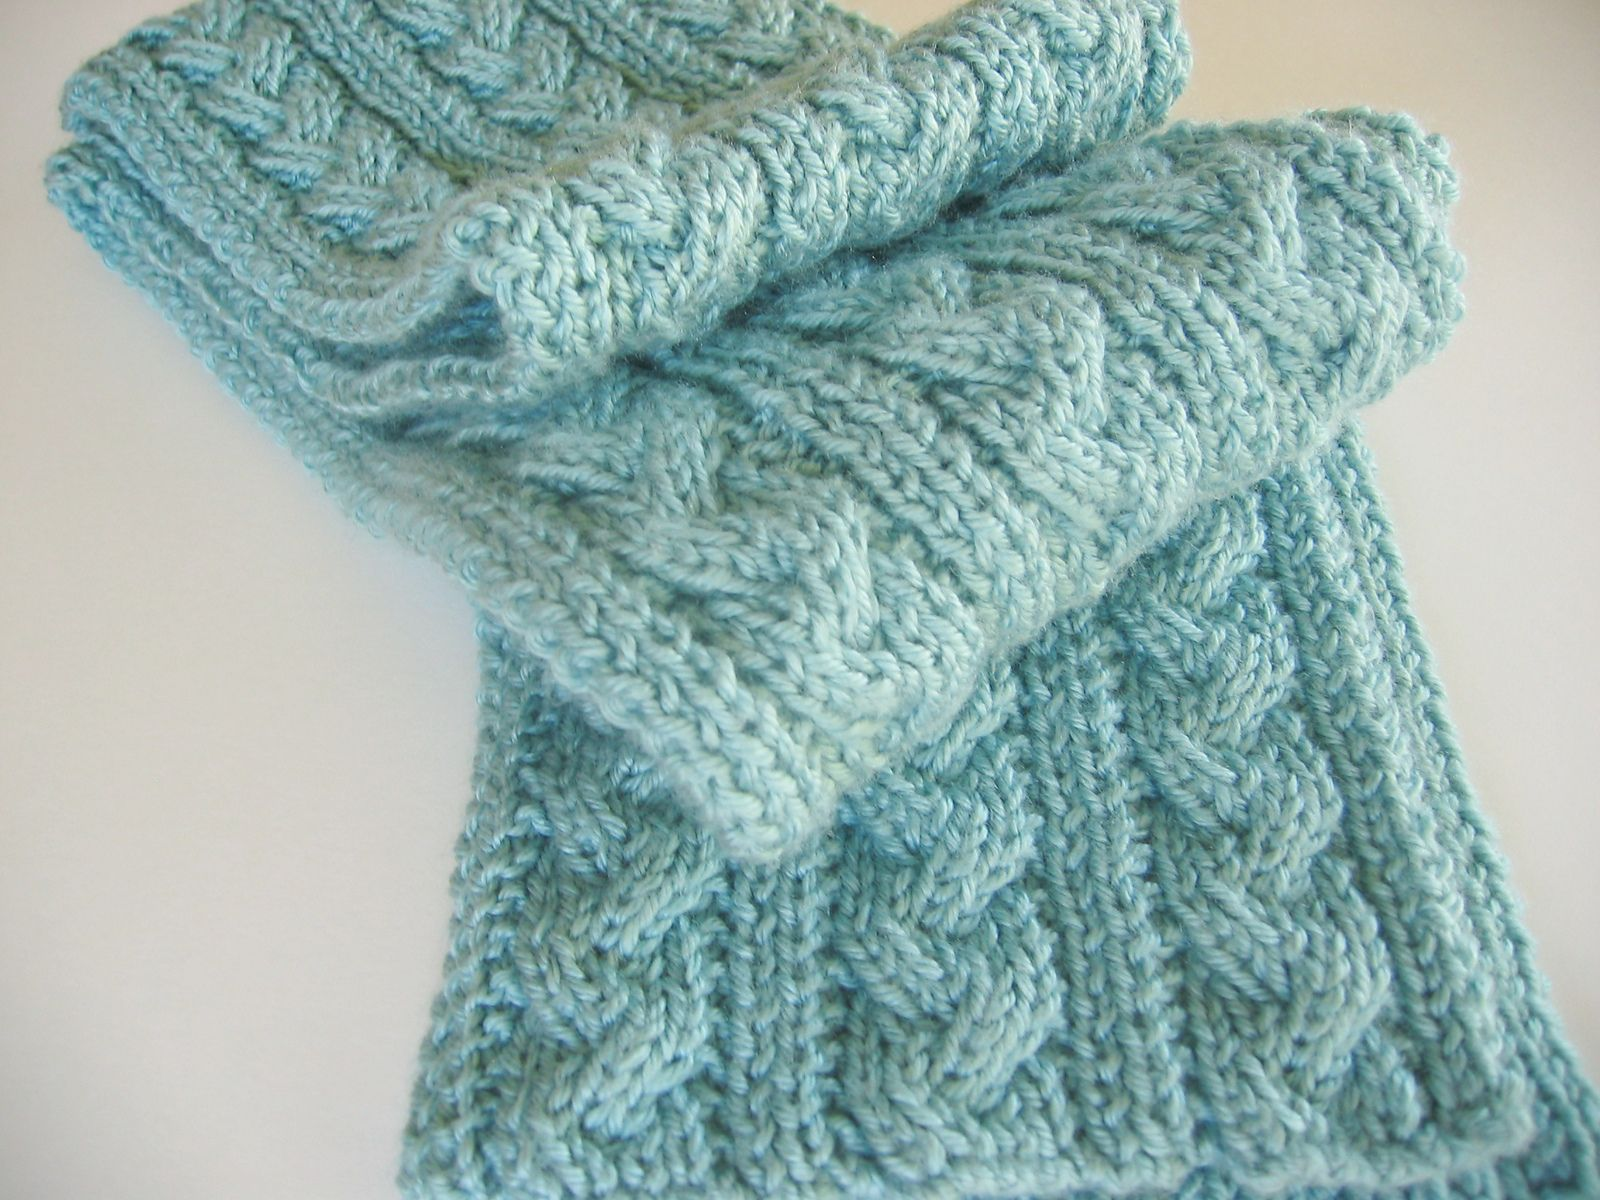 Ravelry: Braid Cable Reversible Hiking Scarf by Jeanna Quinones ...